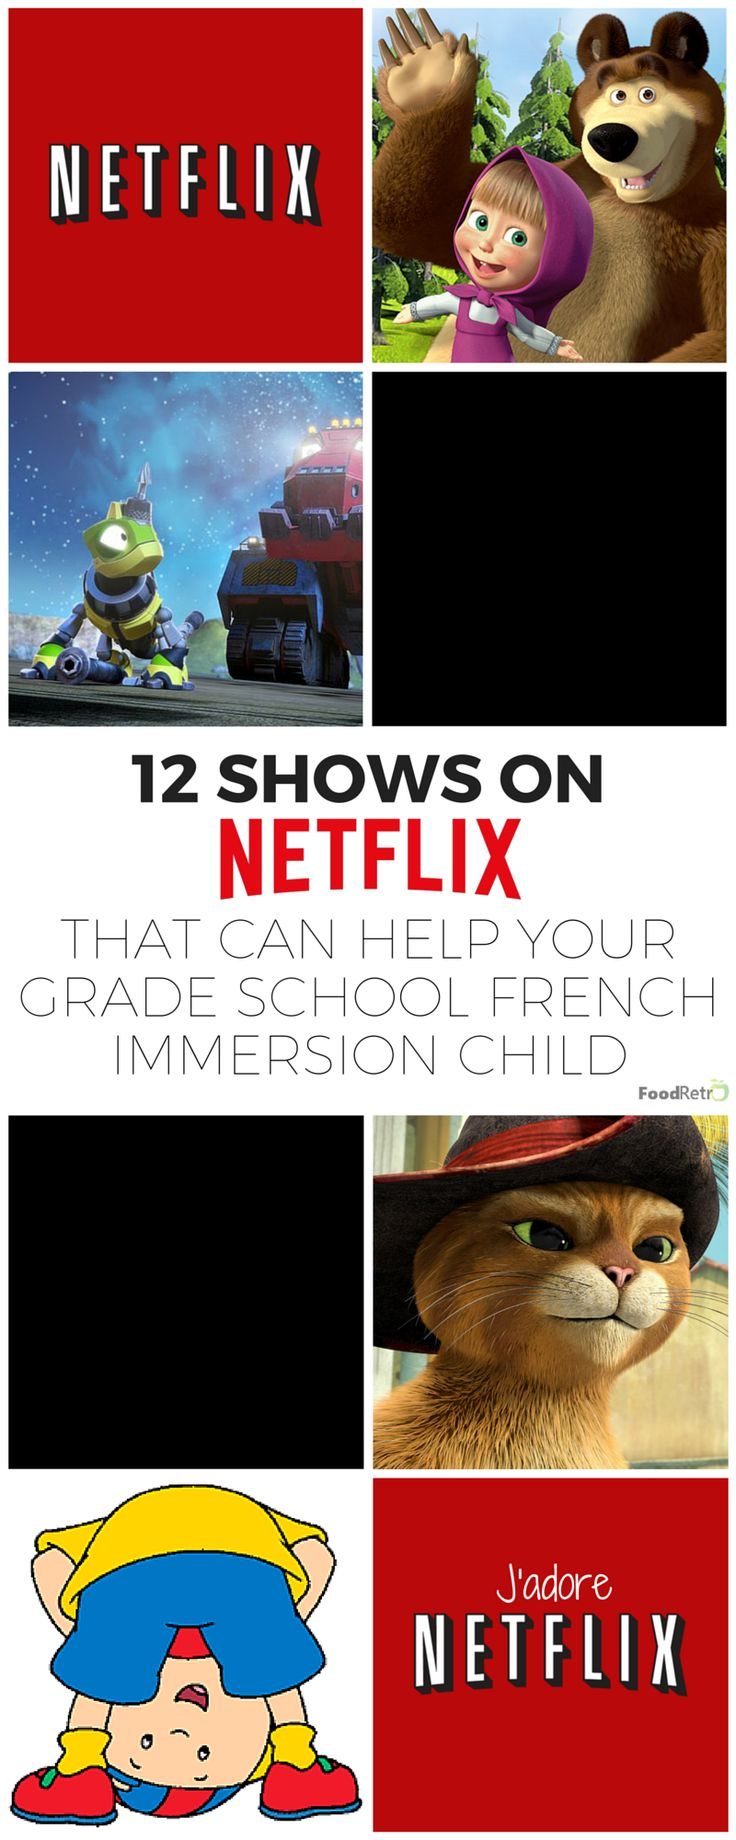 12 Shows on Netflix That Can Help Your Grade School French Immersion Child